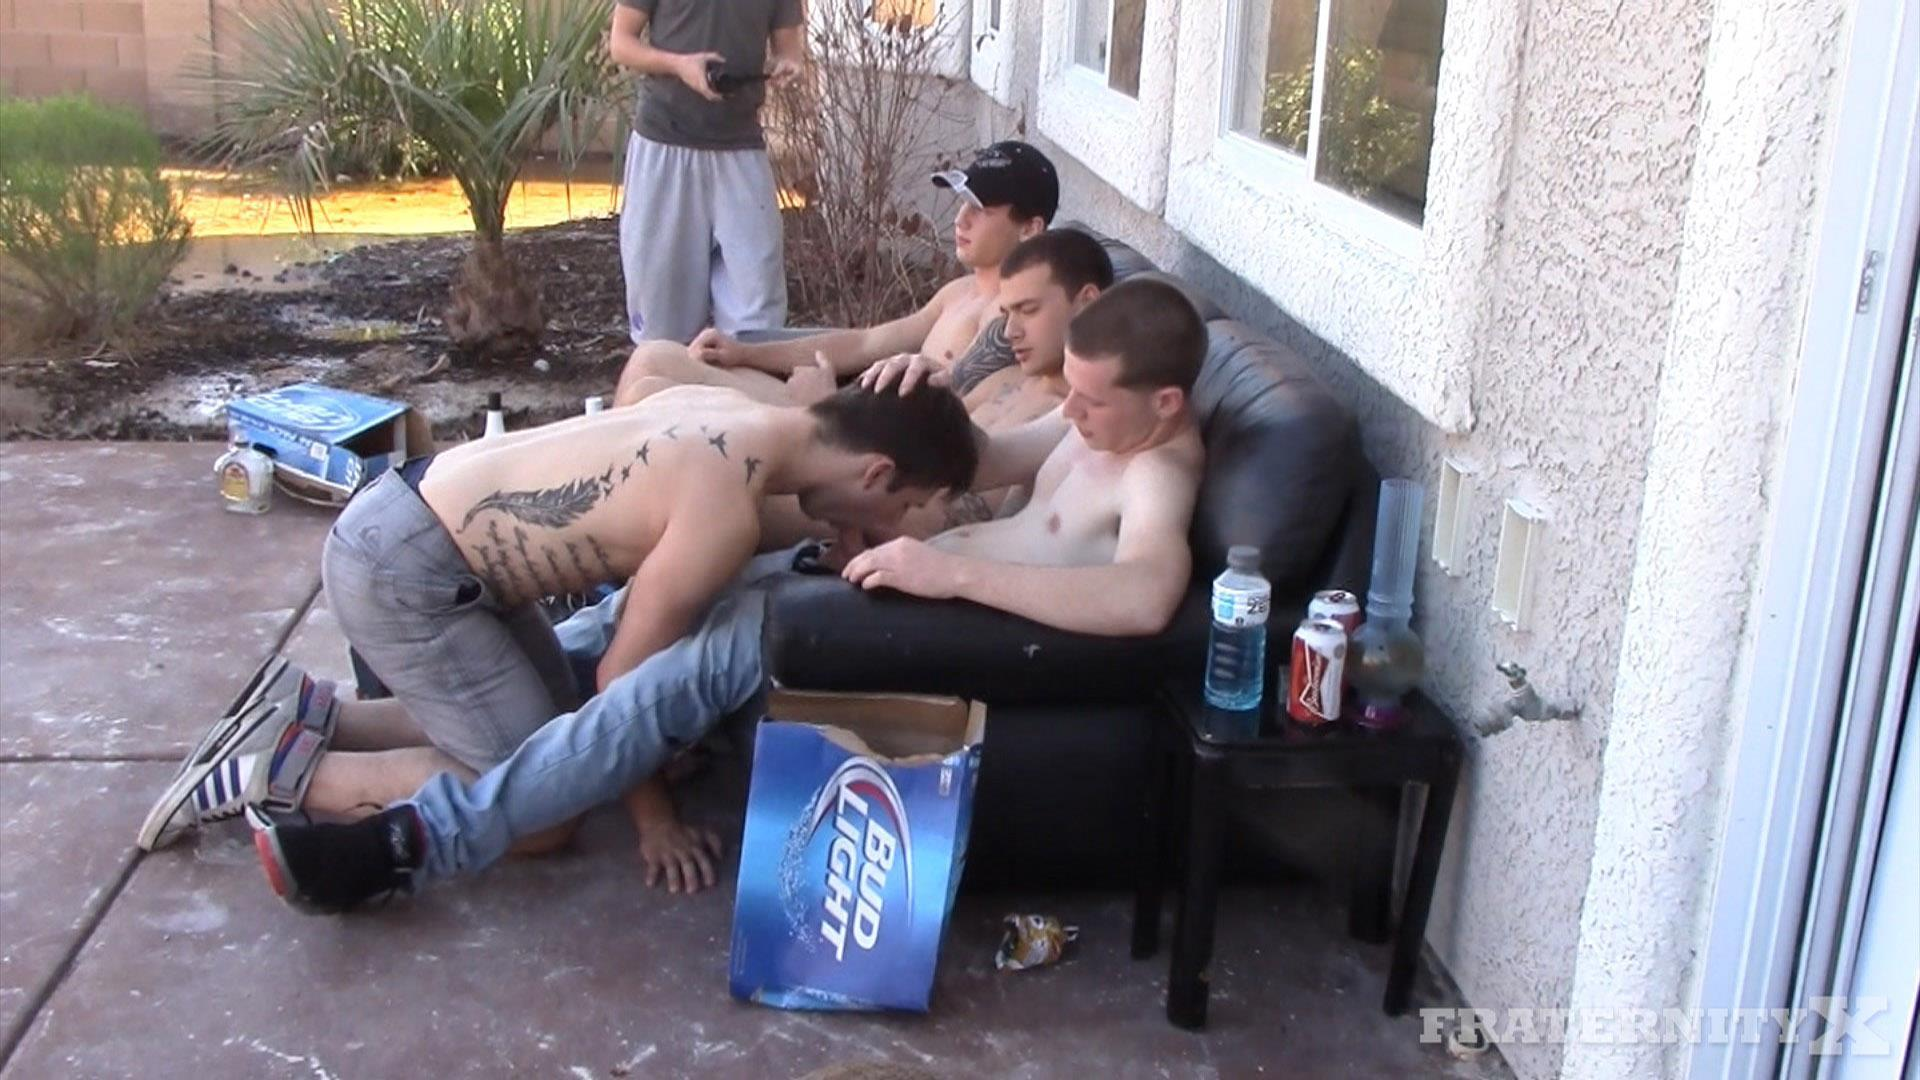 Outside Gay Porn 2